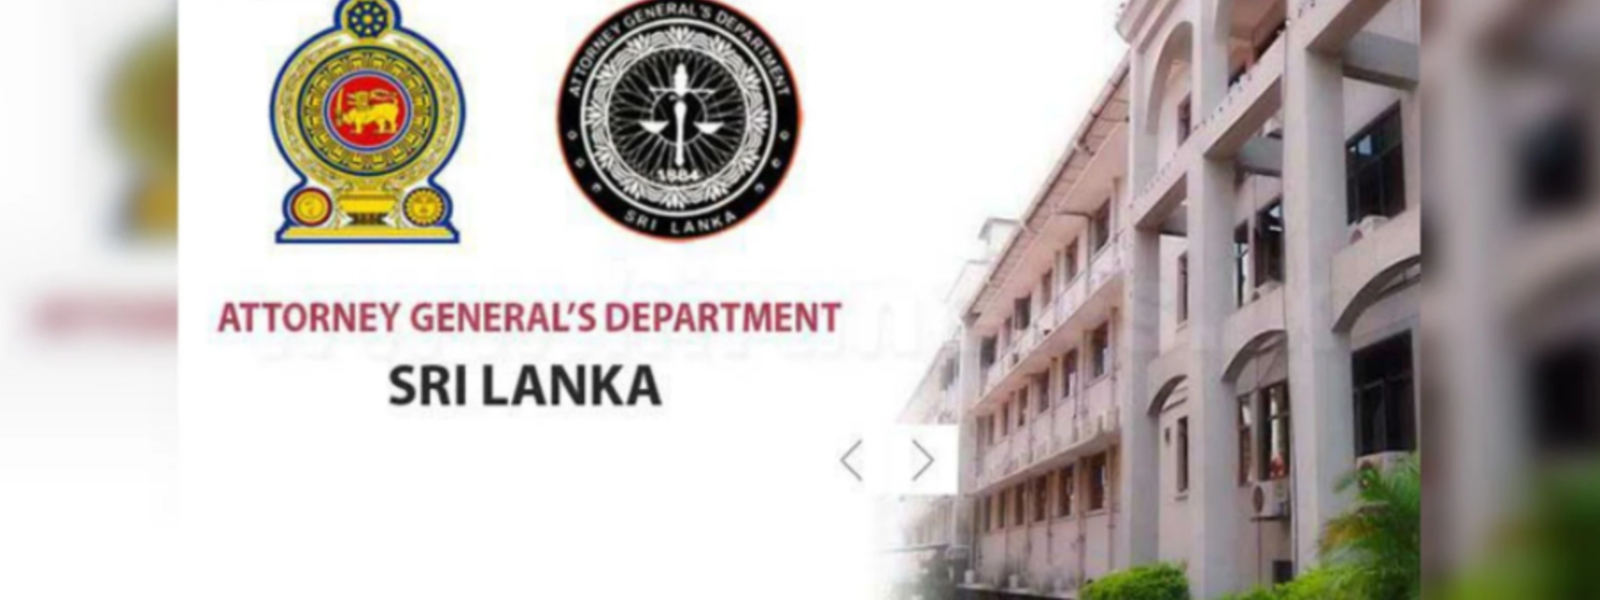 AGs Department to move to new premises